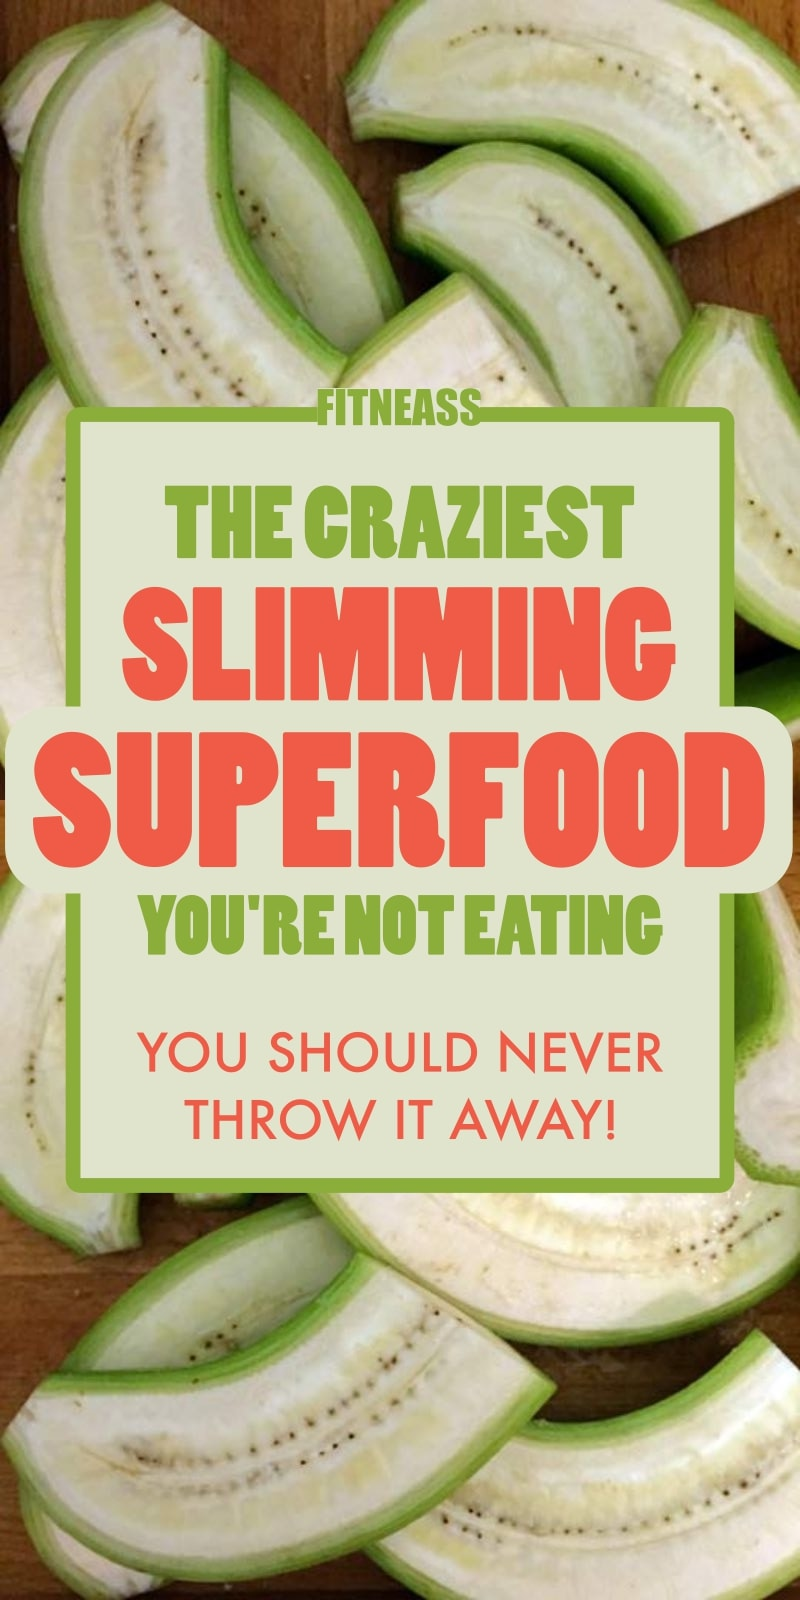 The Craziest Slimming Superfood